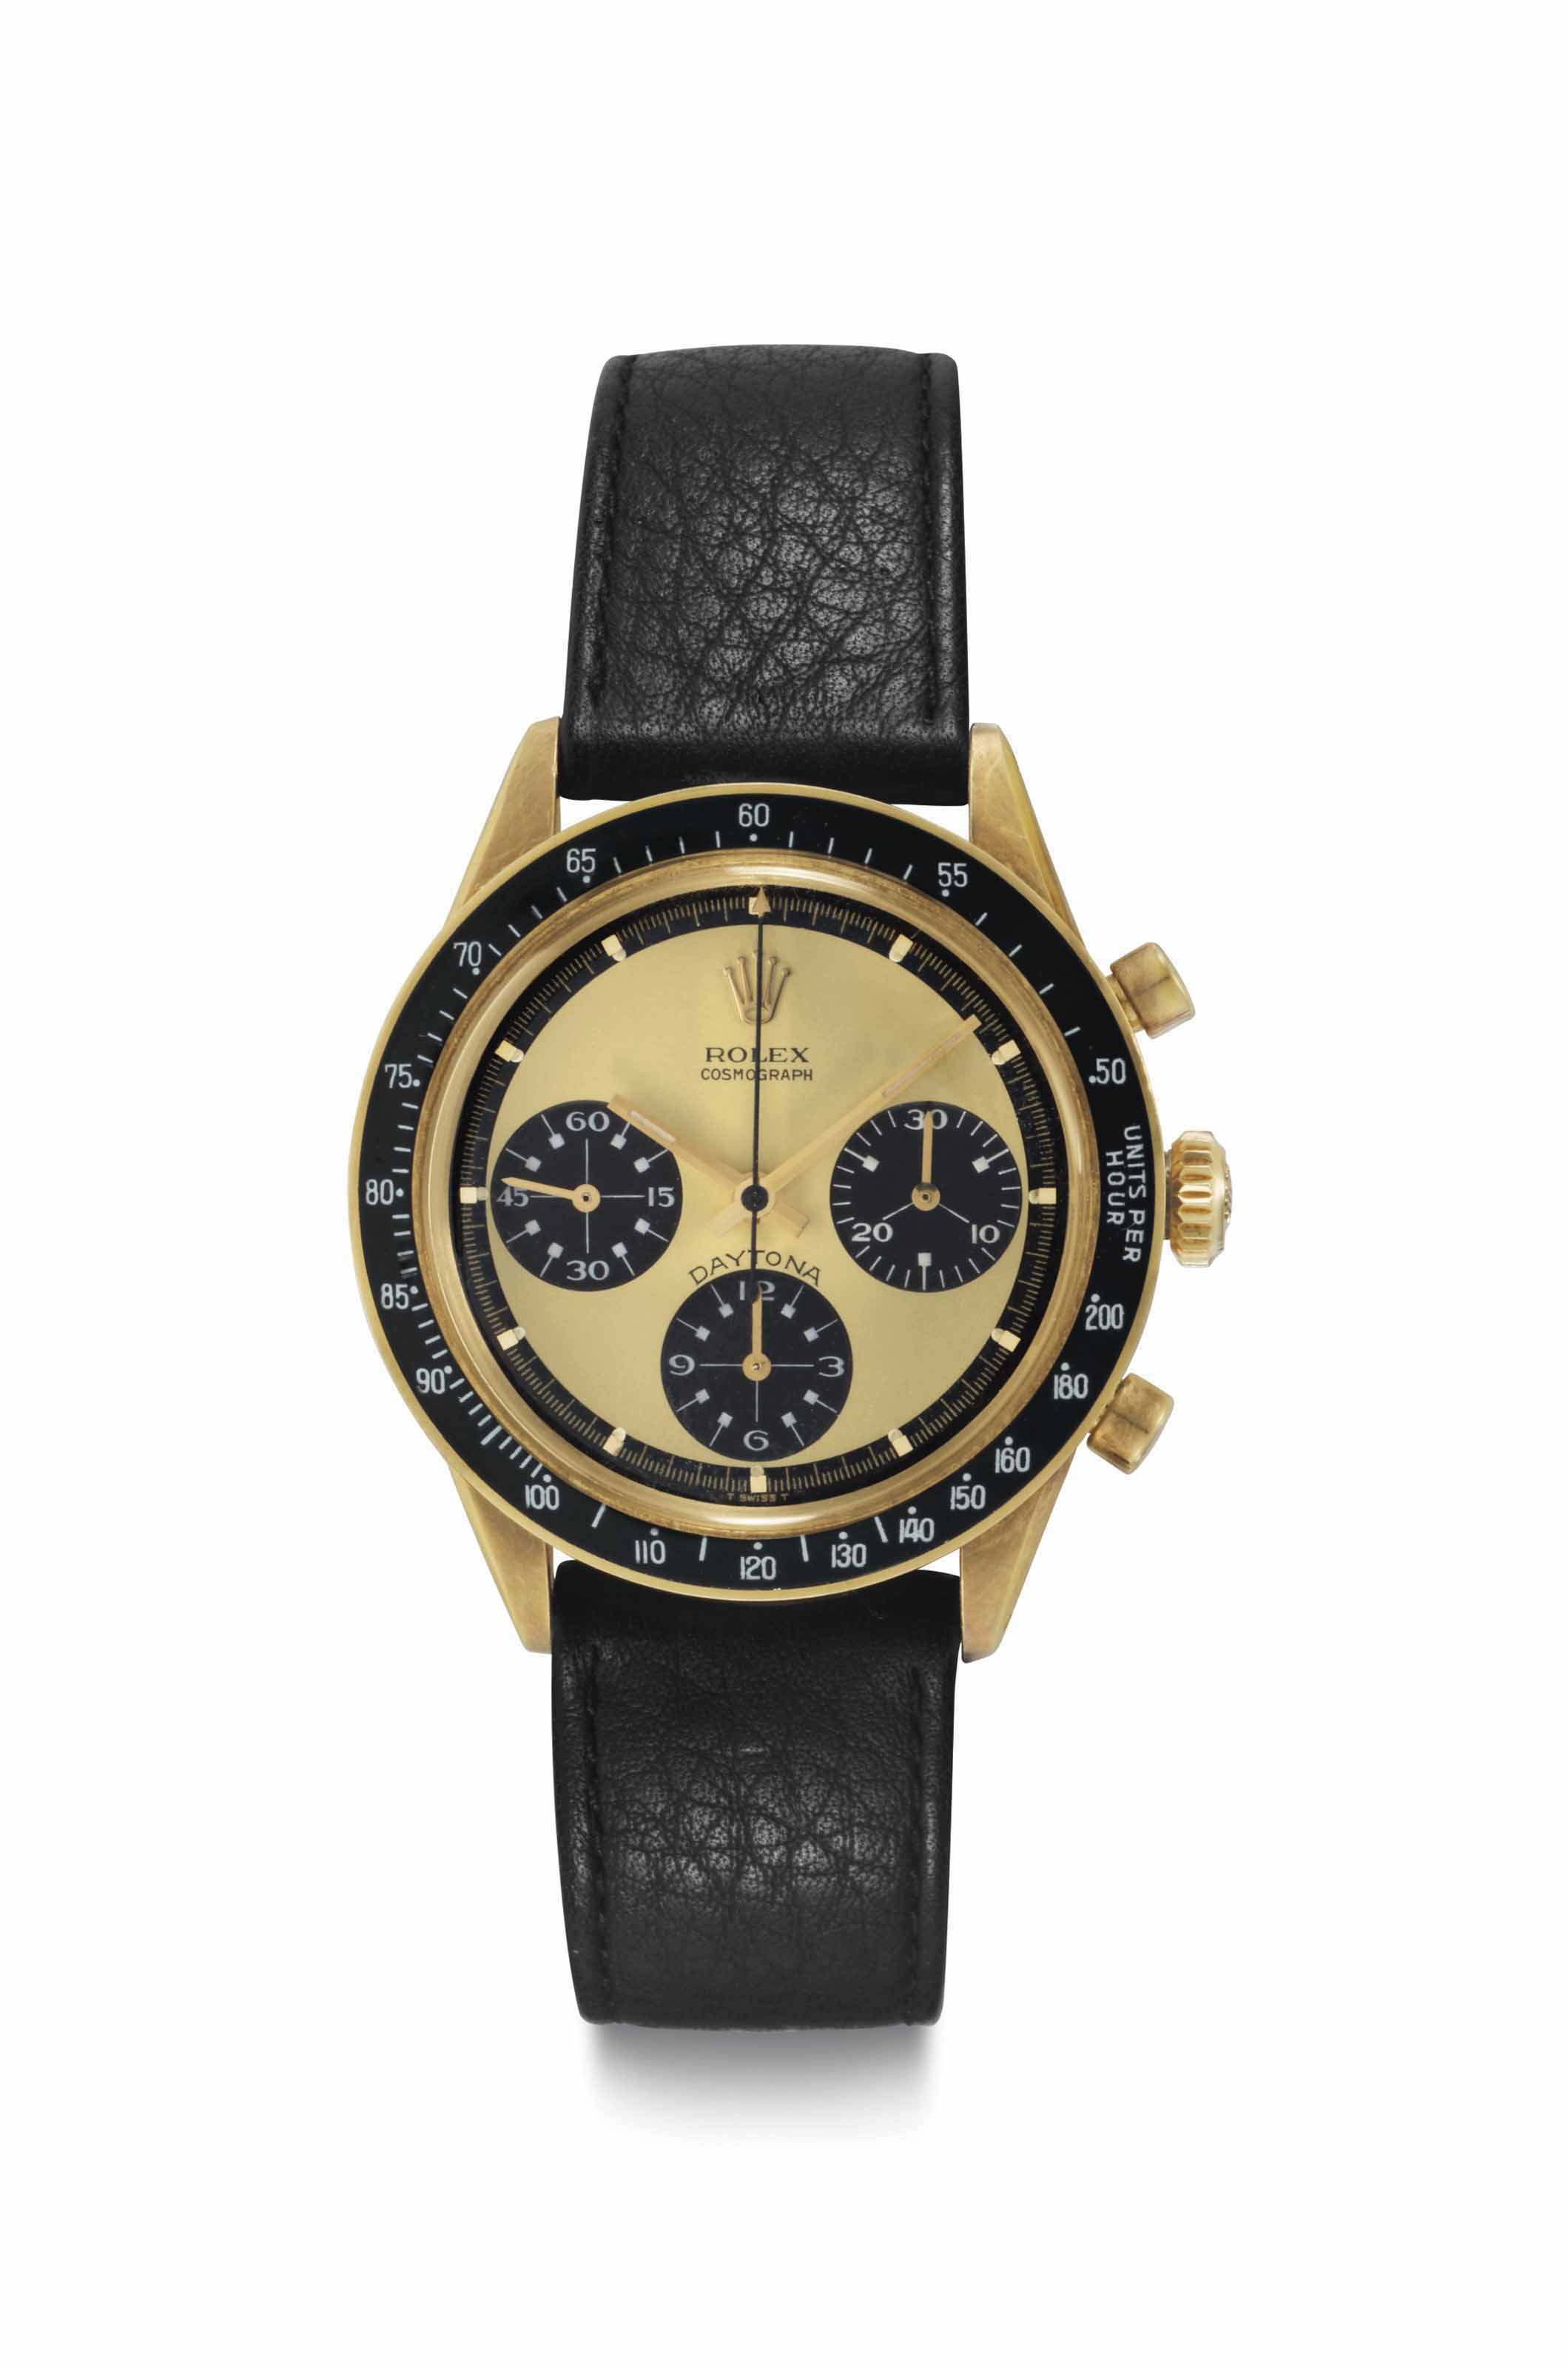 """Rolex. An Extremely Rare, Fine, and Attractive 18k Gold Chronograph Wristwatch with Lemon """"Paul Newman"""" Dial and White Numerals to the Subsidiary Dials"""